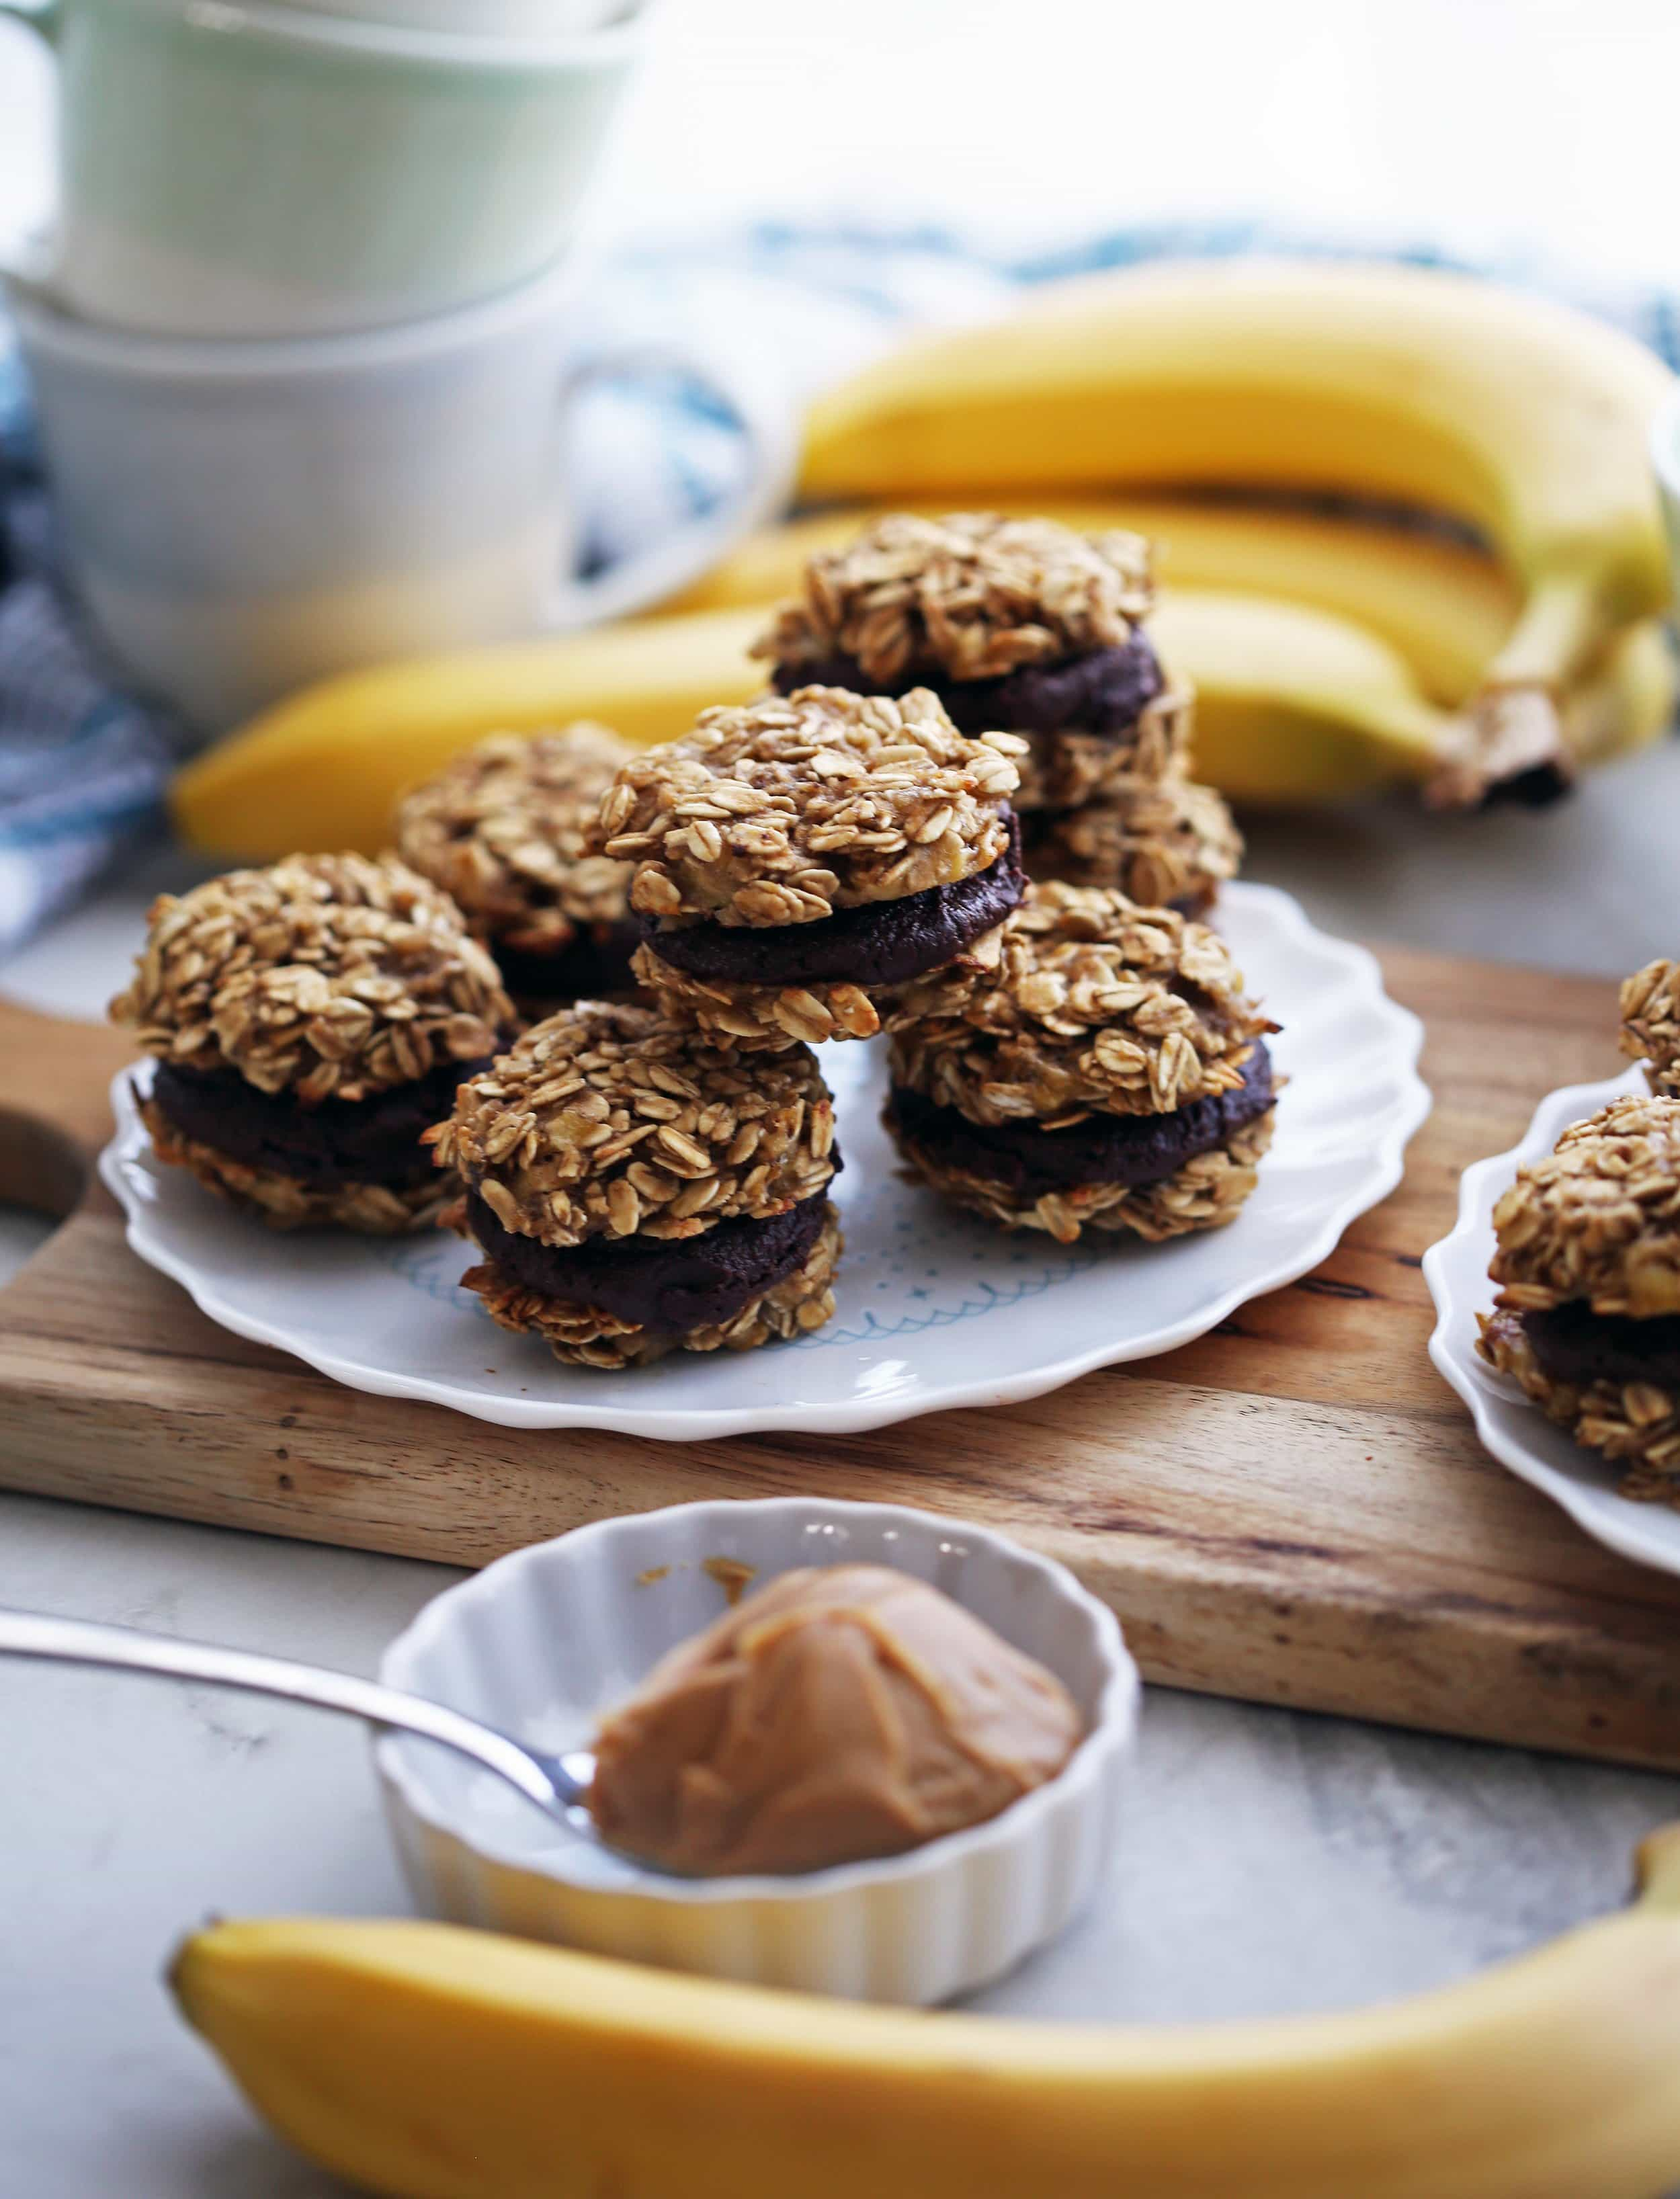 Banana Oatmeal Sandwich Cookies with Peanut Butter Cocoa Filling